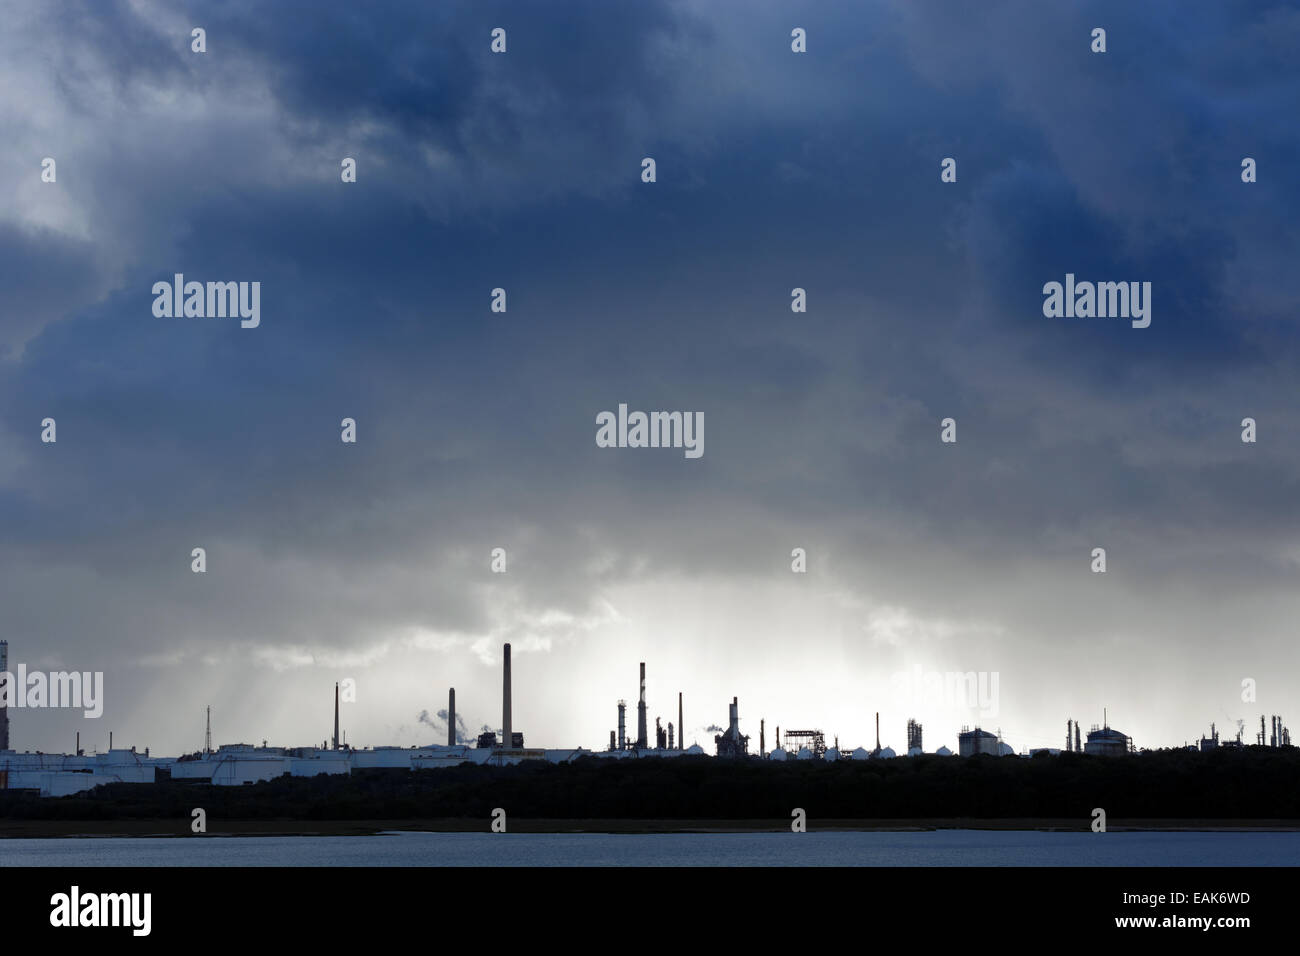 Fawley Oil Refinery, Southampton Water, Hampshire, England. - Stock Image